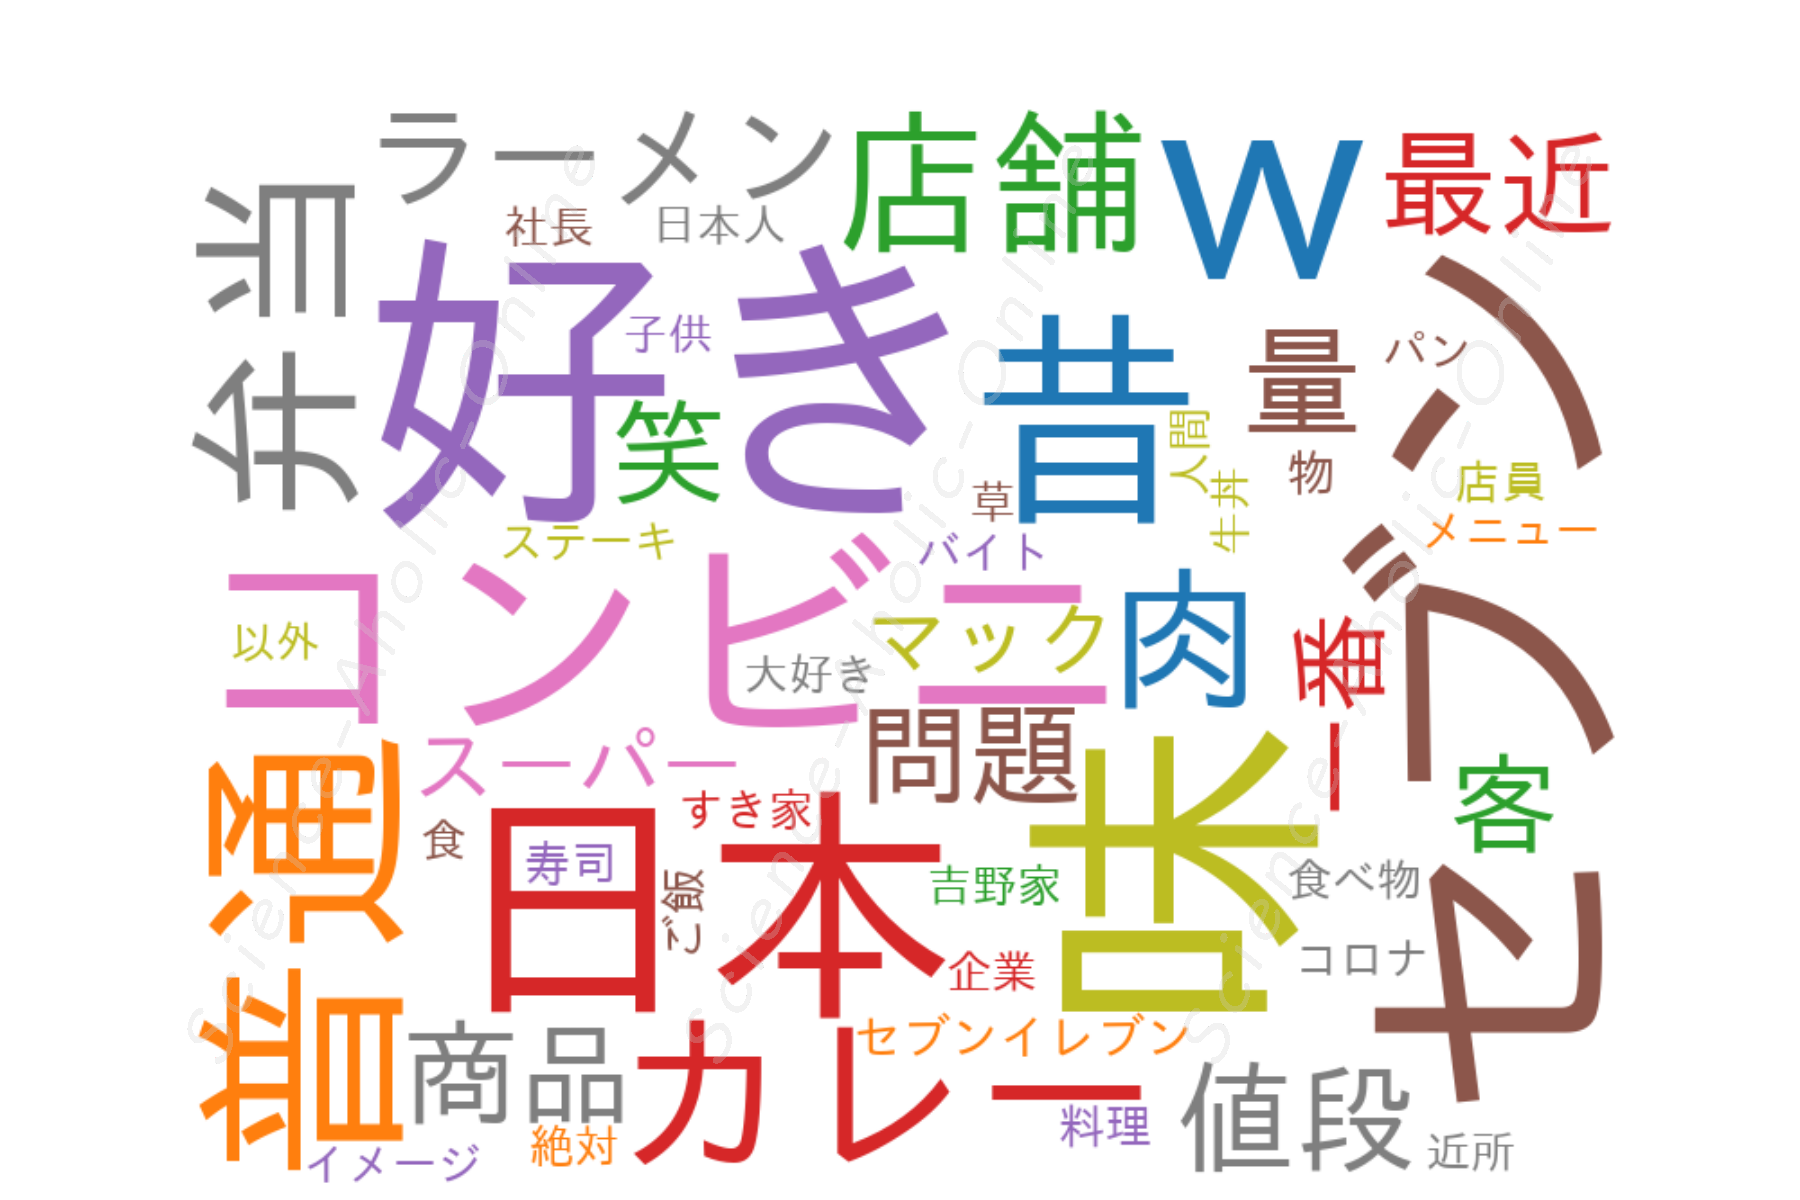 https://science-aholic-online.com/wp-content/uploads/2020/08/wordcloud_『食の雑学』をゆっくり解説.png